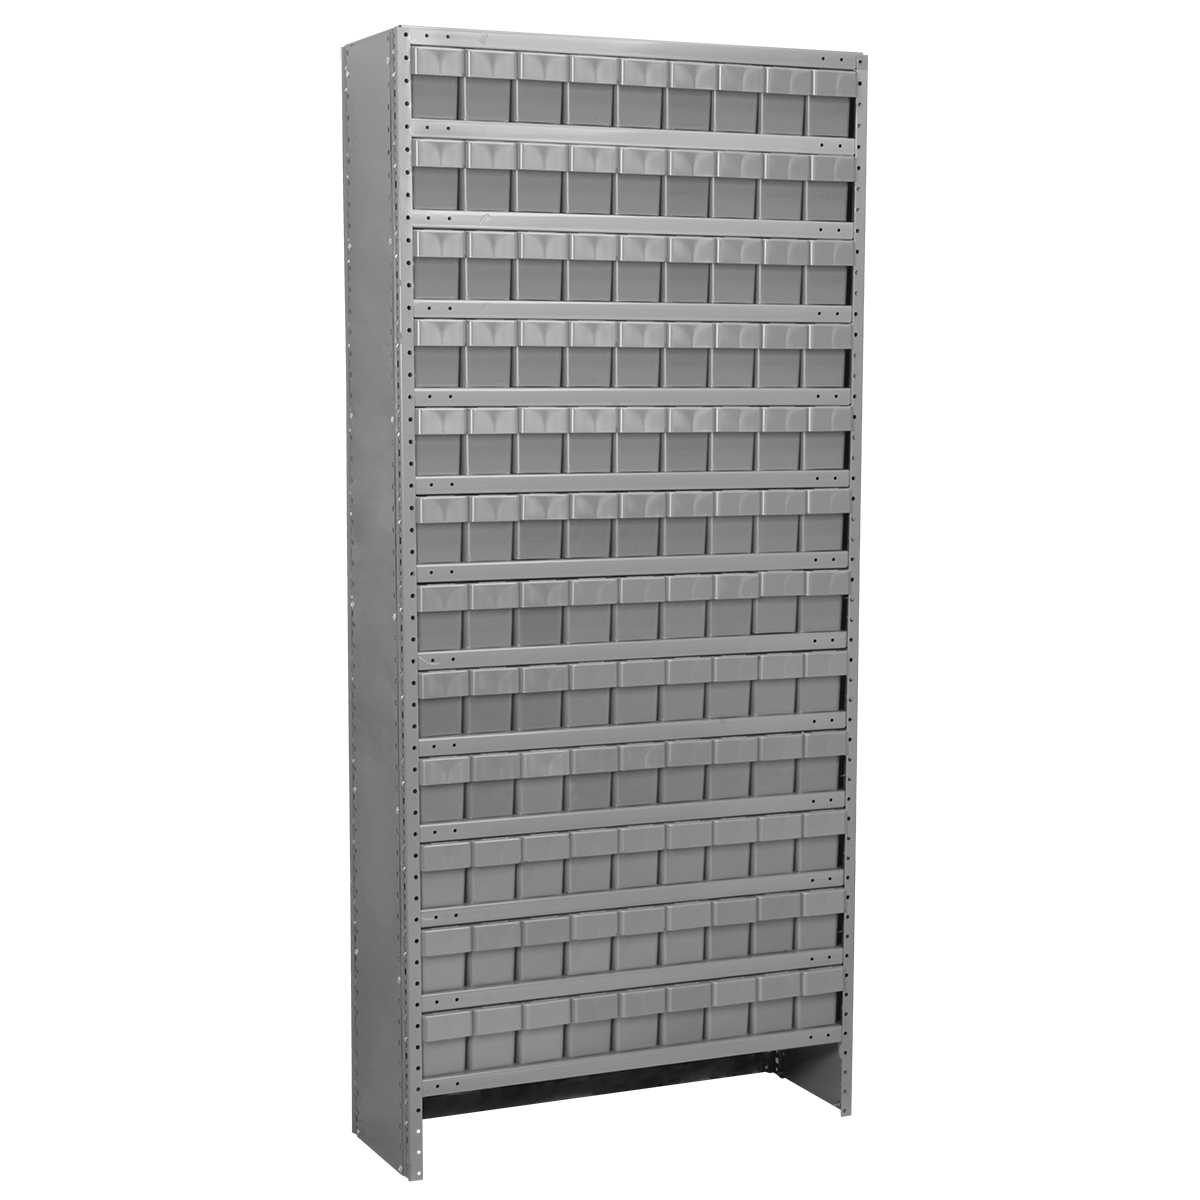 Enclosed Steel Shelving Kit, 12x36x79, 108 AkroDrawers, Gray/Gray.  This item sold in carton quantities of 1.